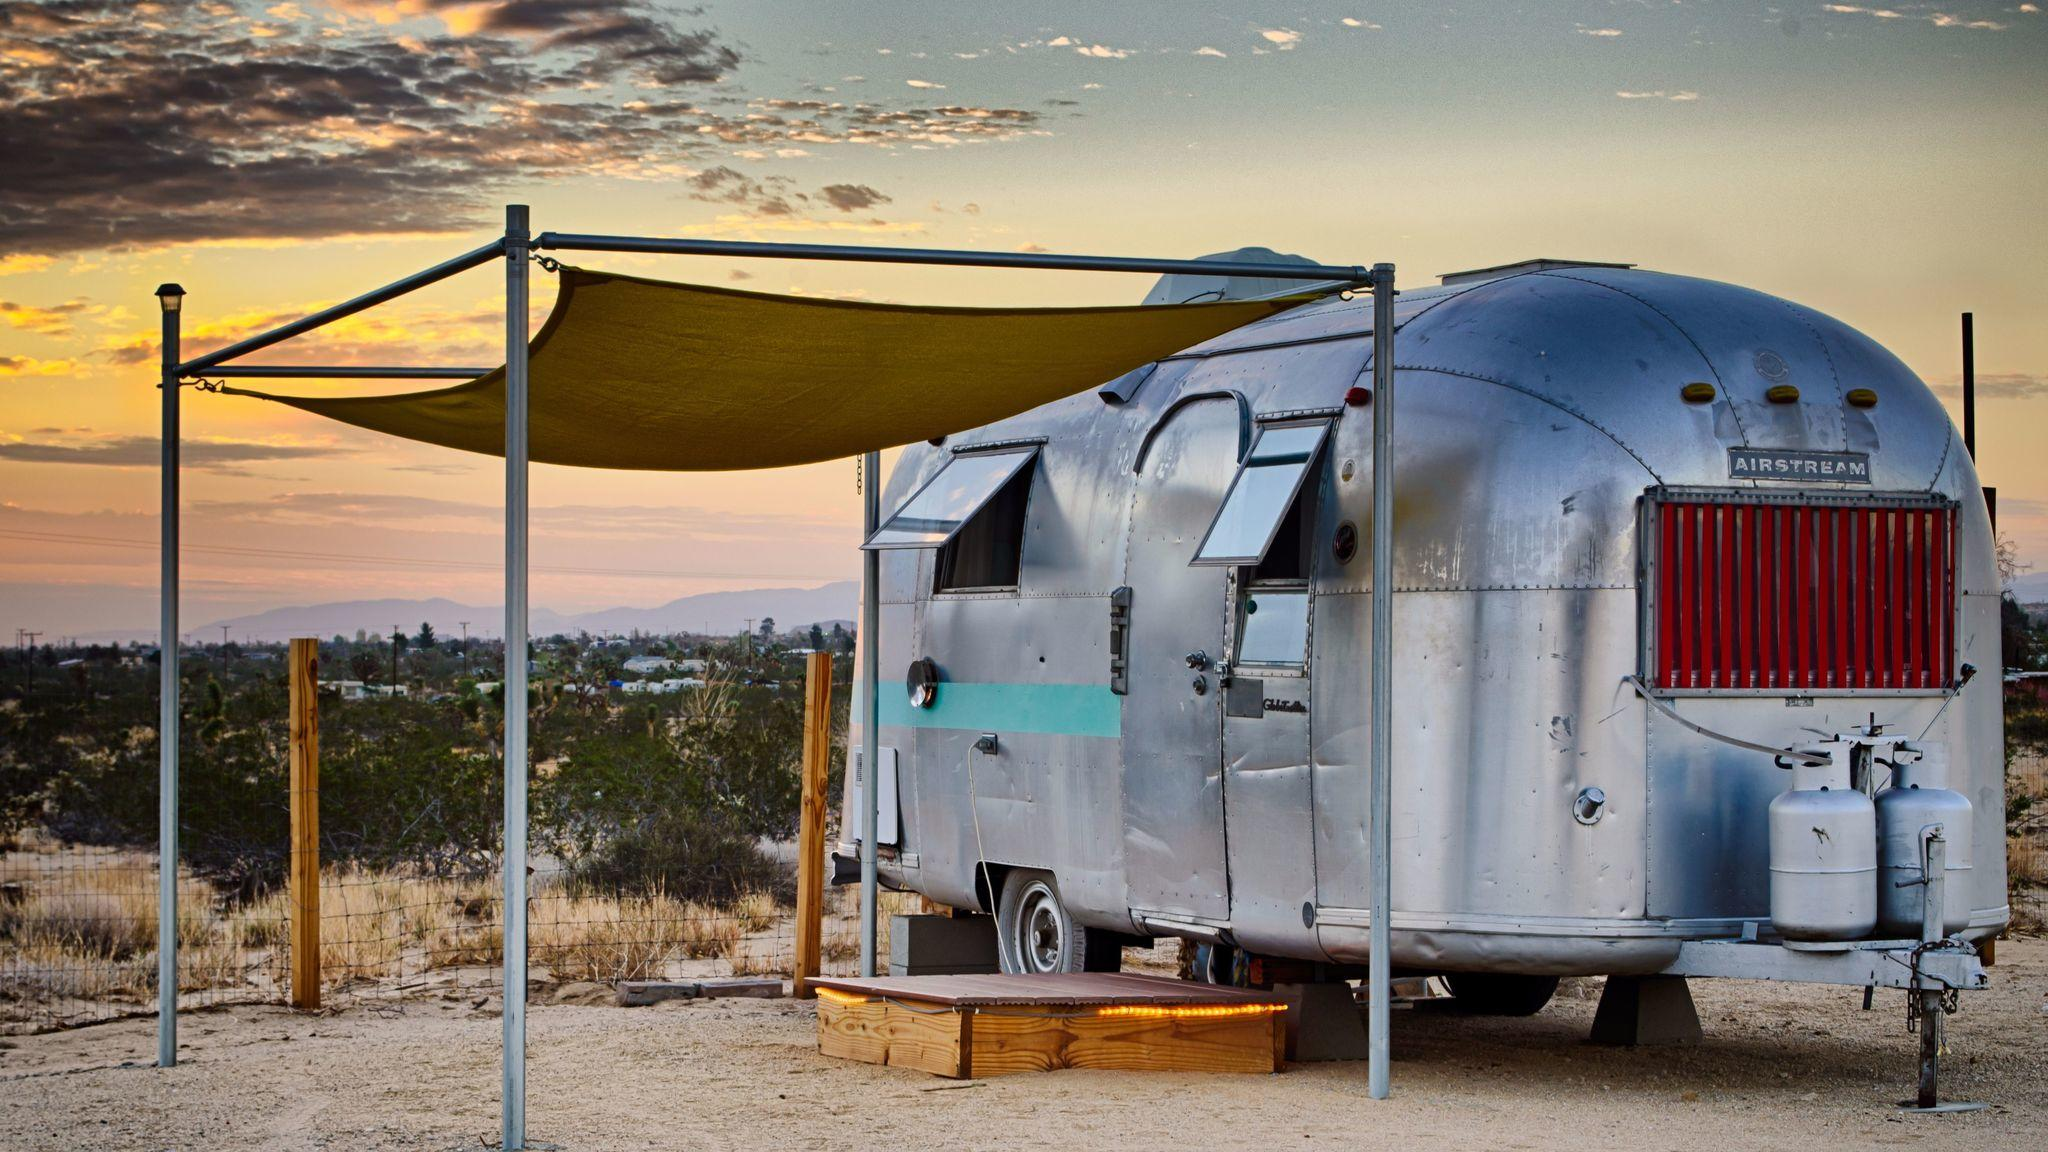 Kate's Lazy Desert Airstream in Landers, Calif. (Kate's Lazy Desert)